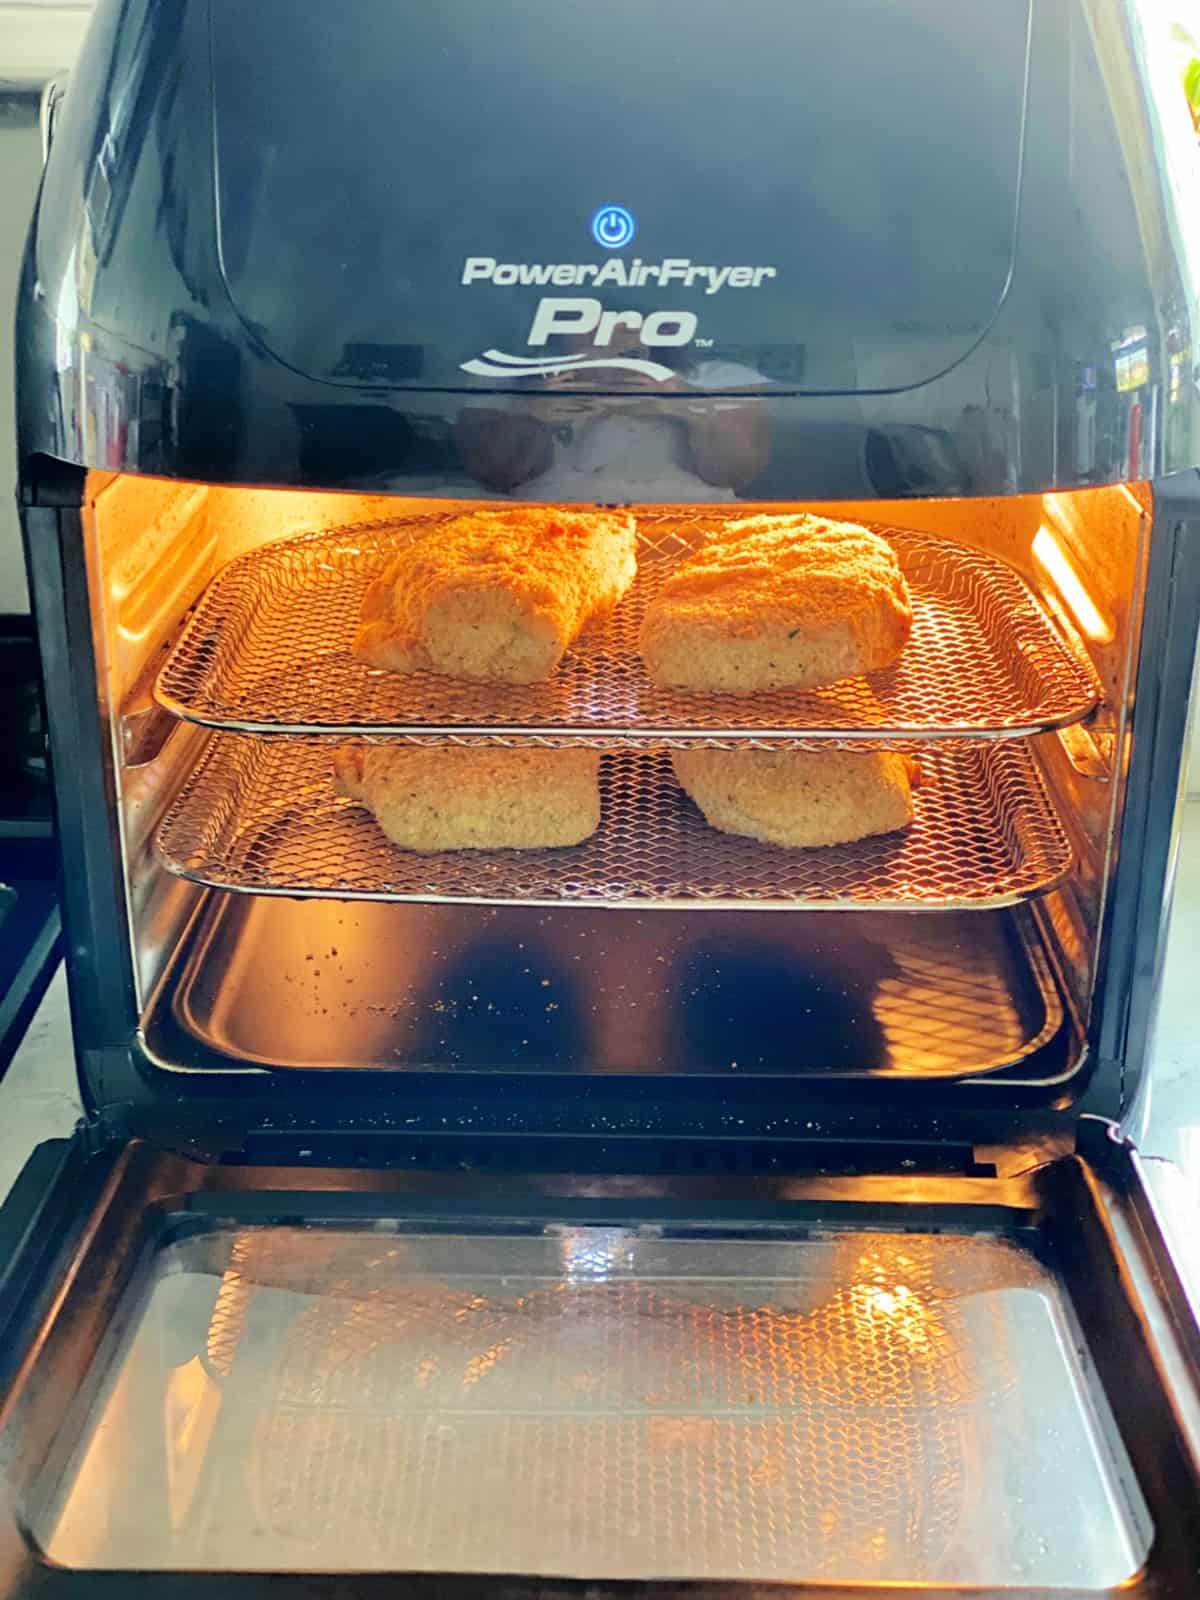 Power AirFryer Pro with two metal racks with breaded pork chops inside.